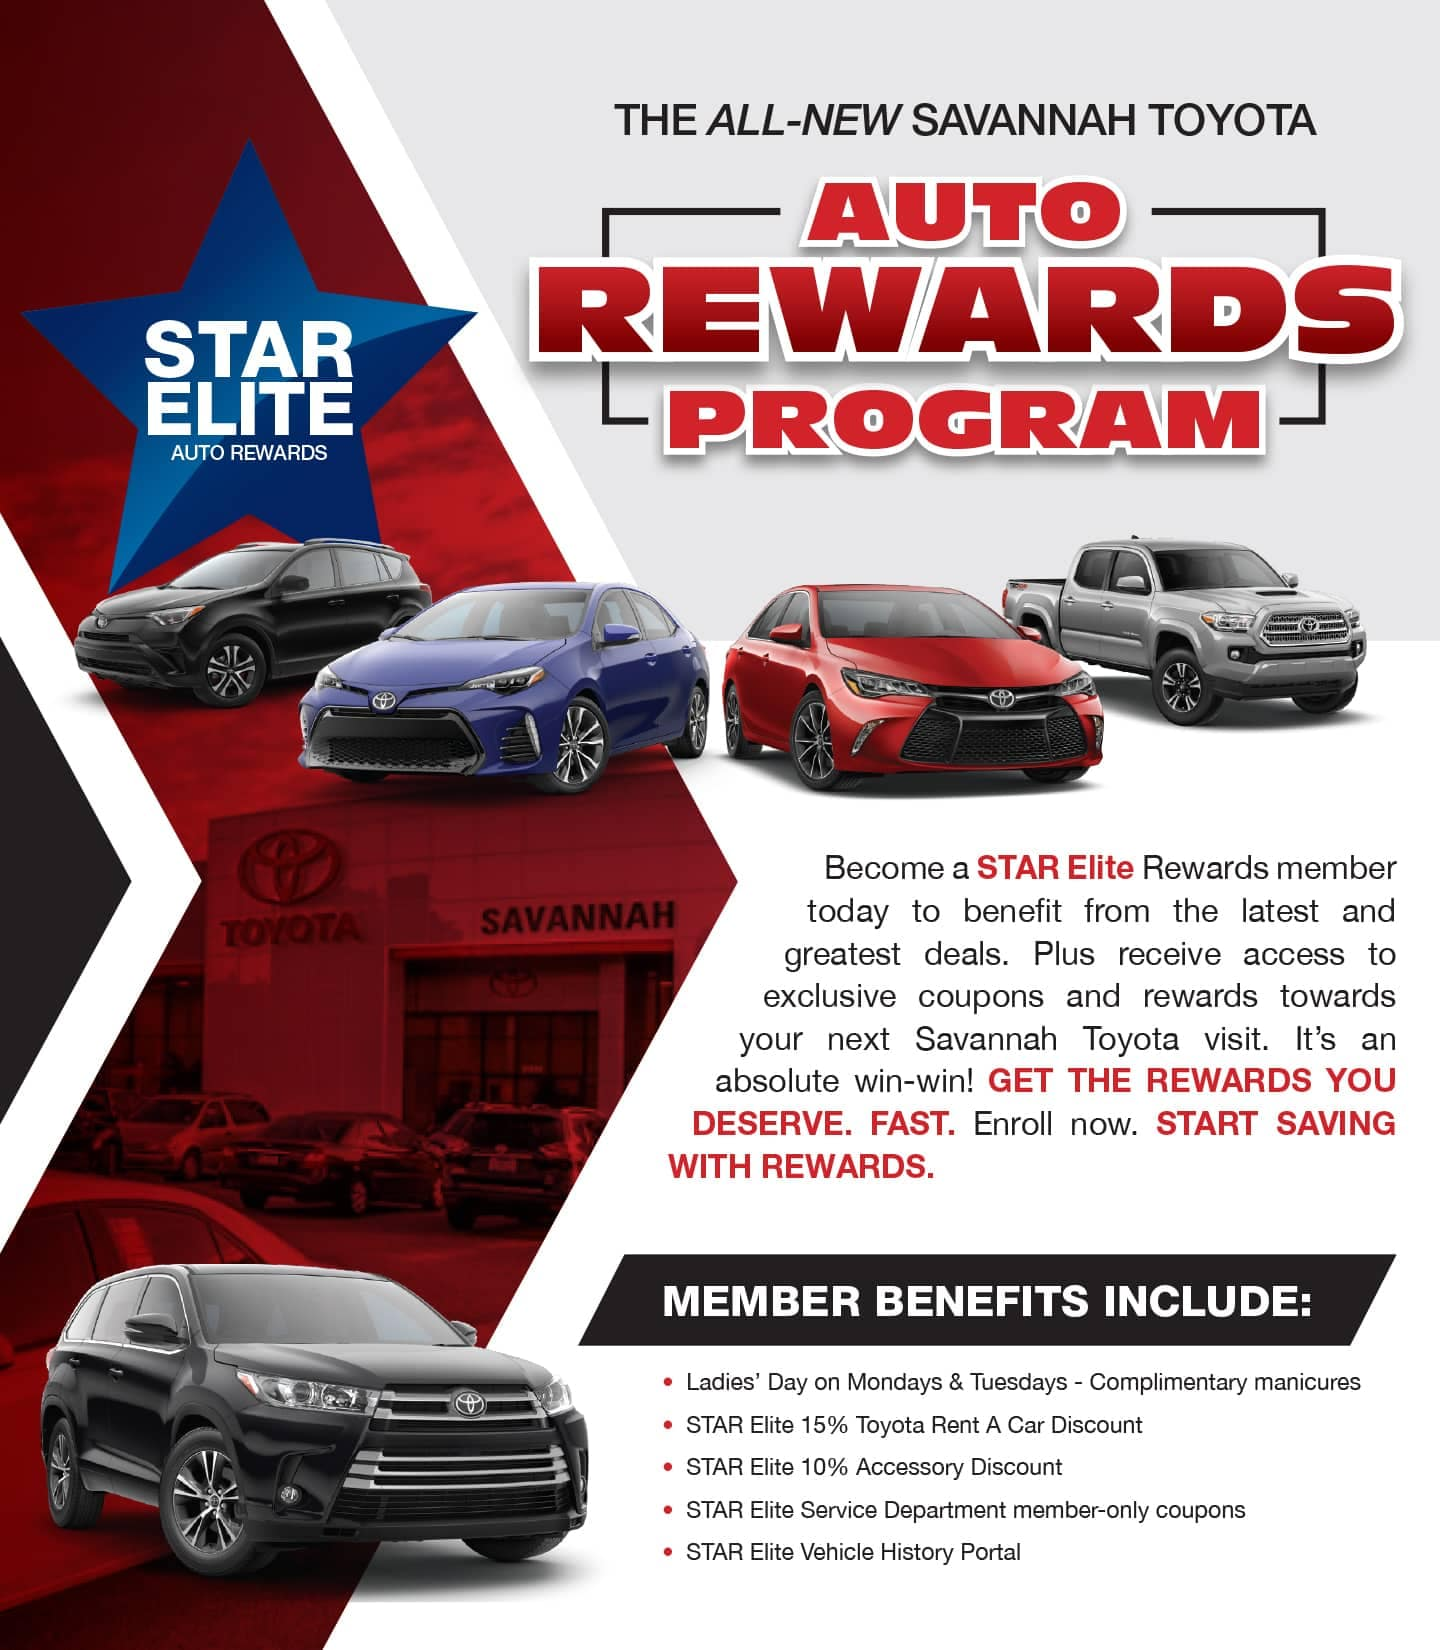 Auto_Rewards_Program